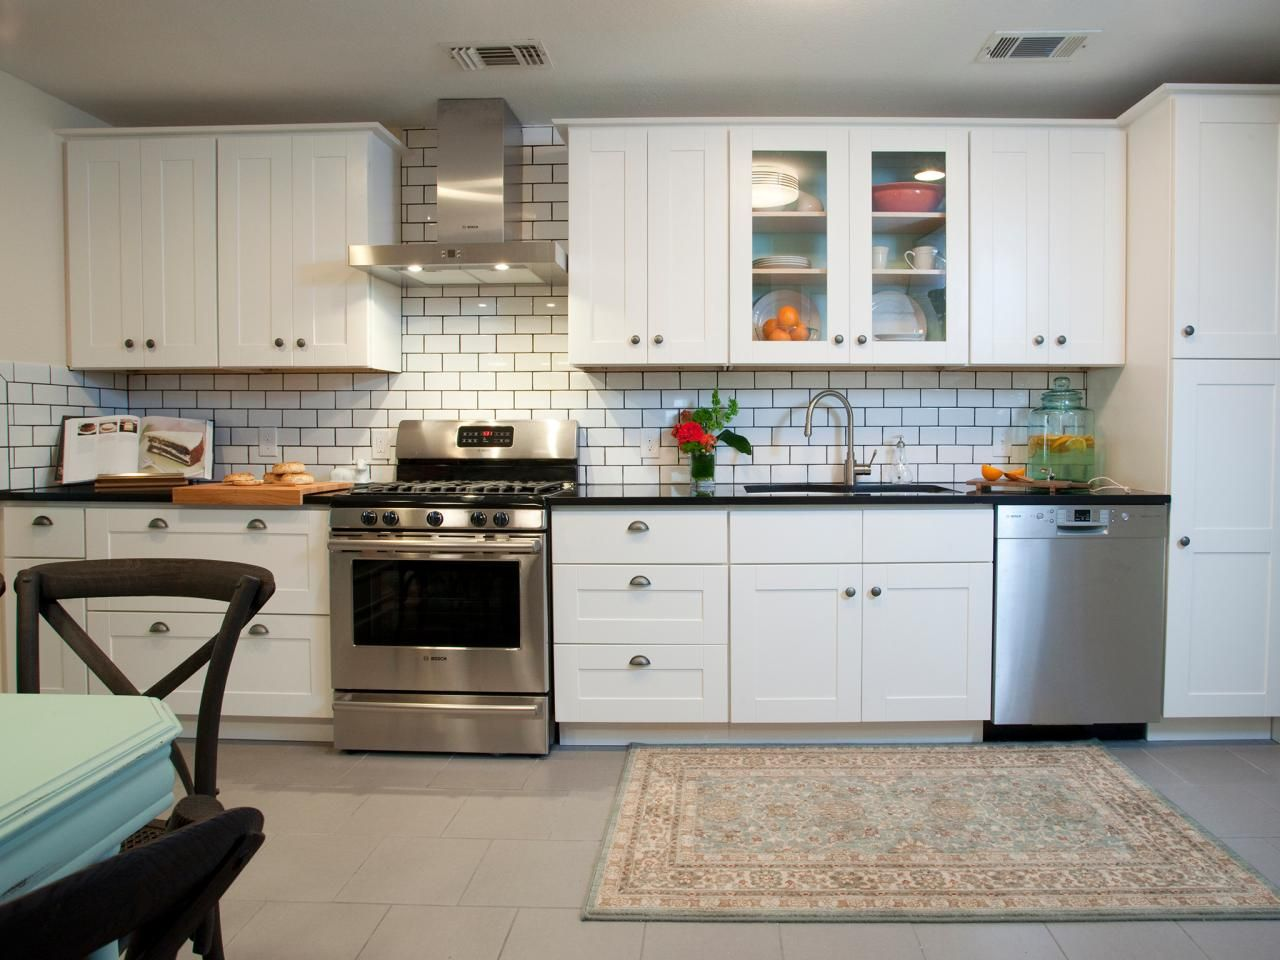 white subway tile in kitchen - home design